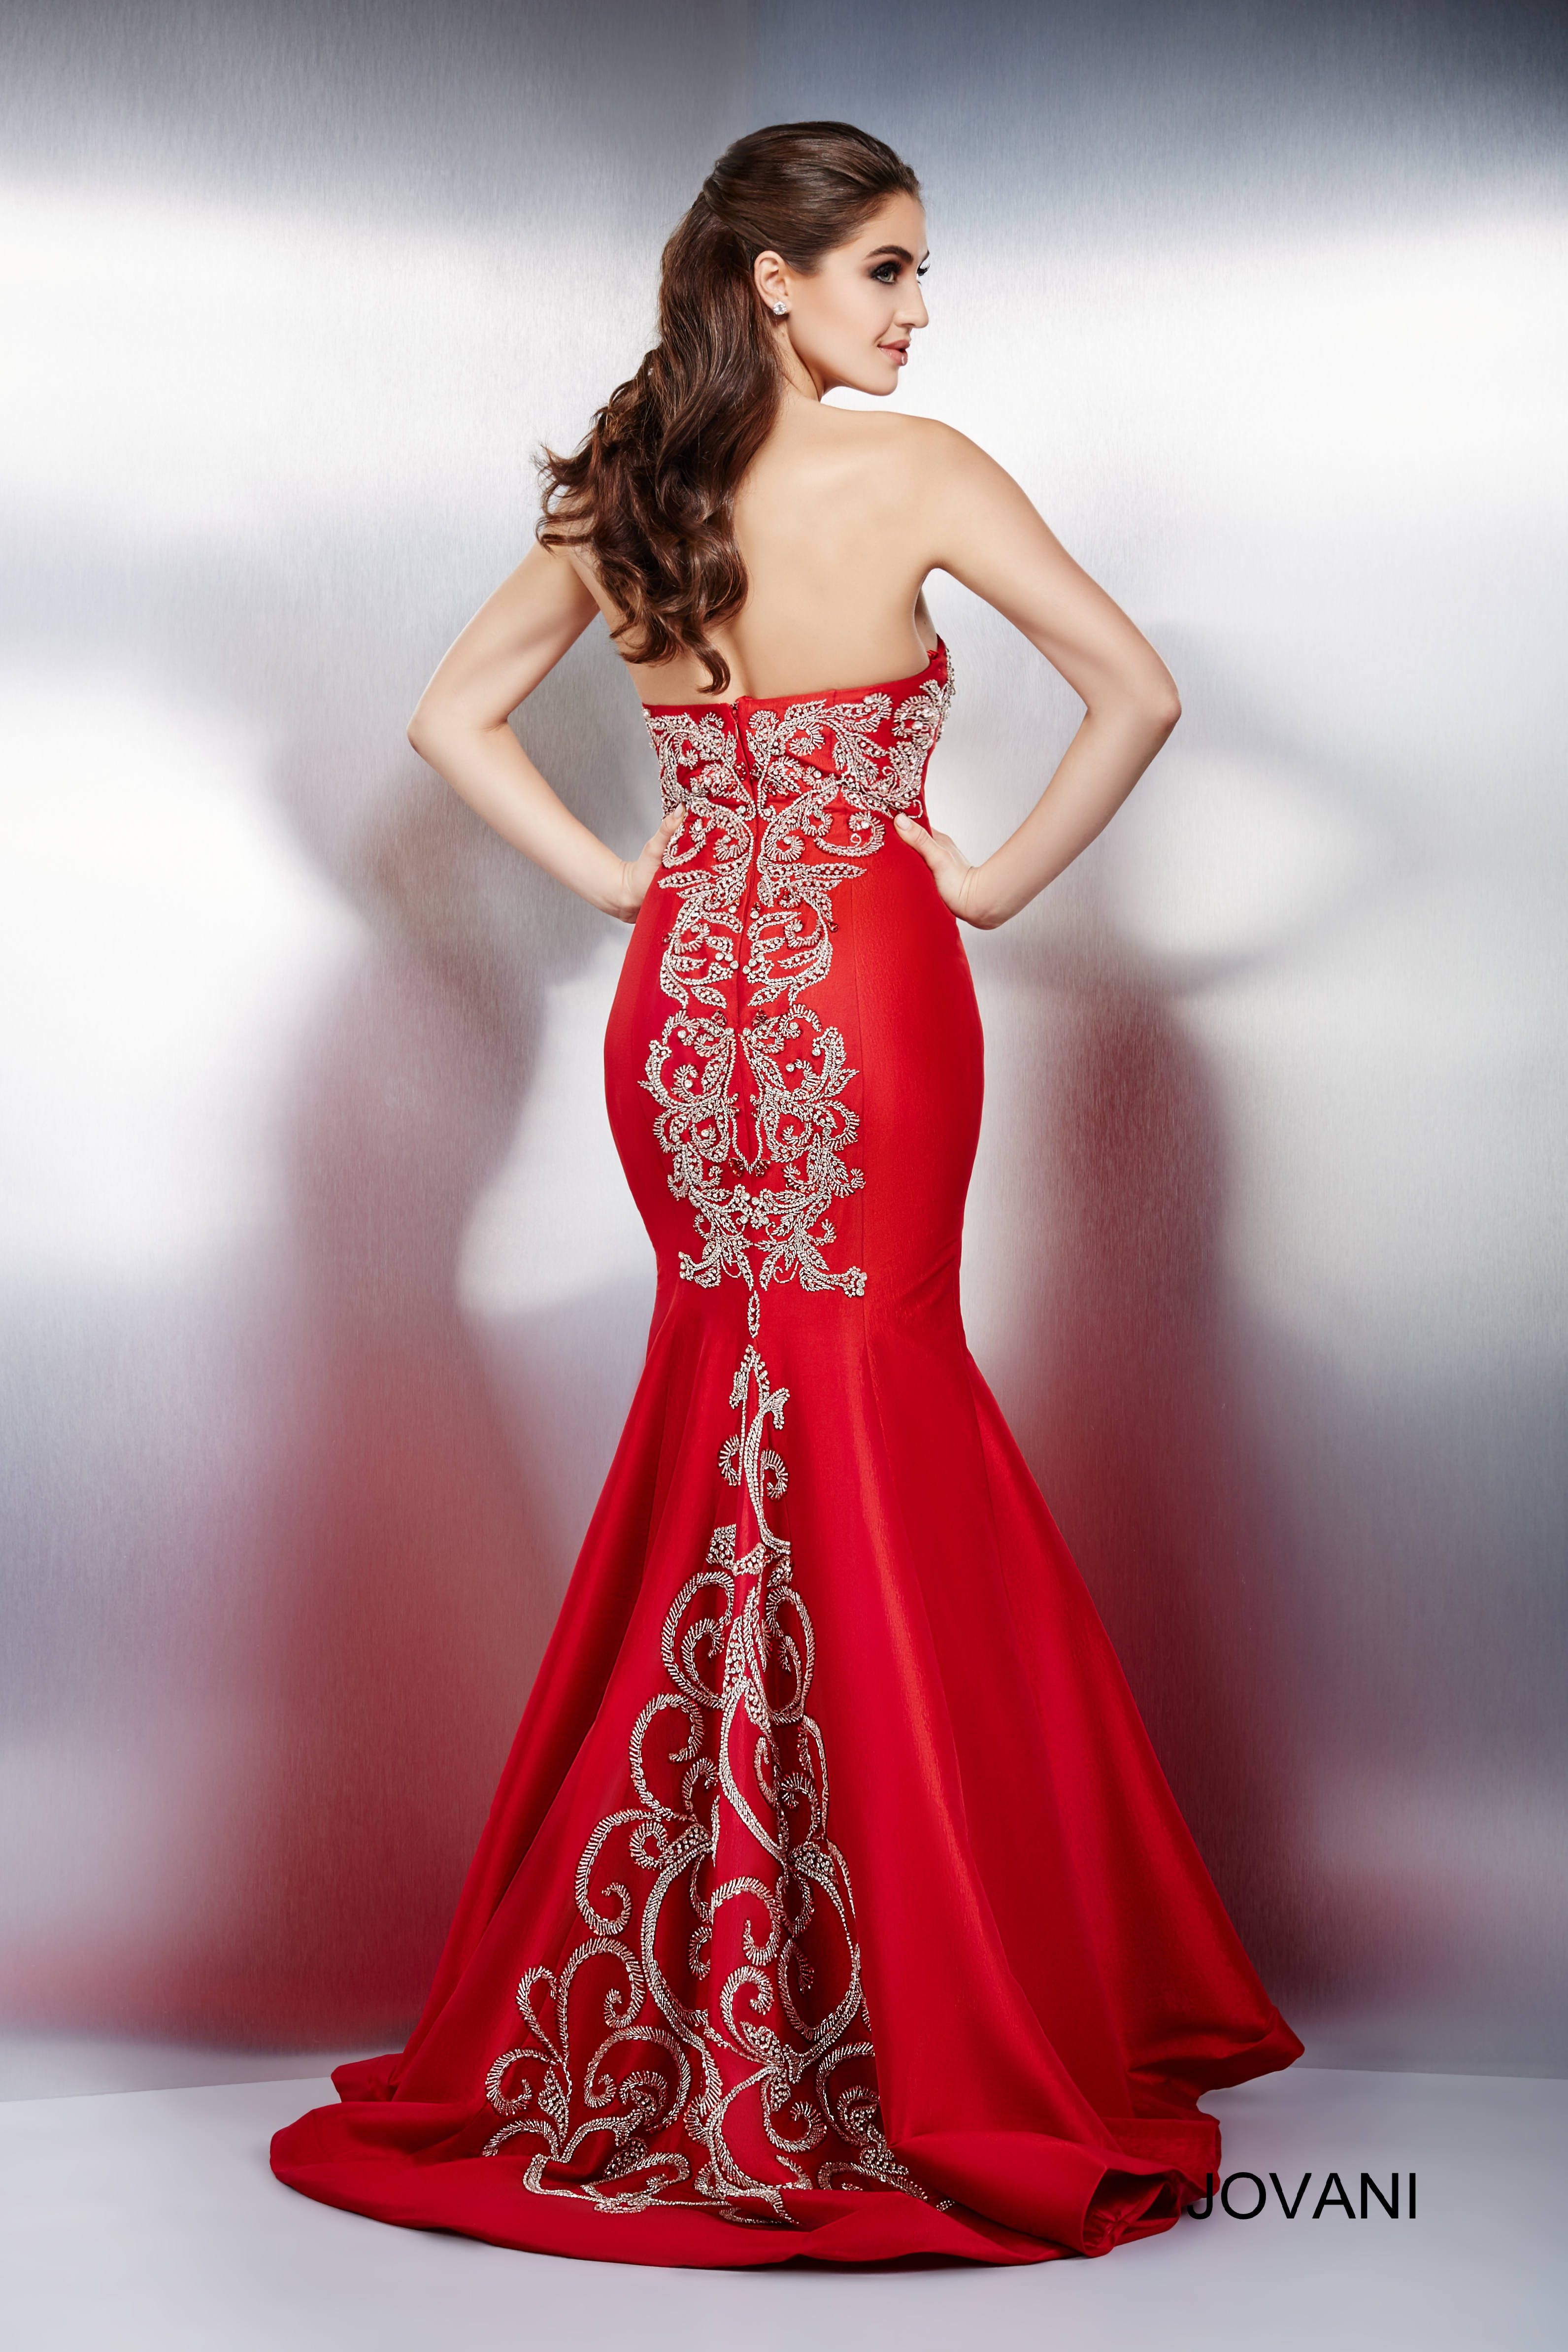 Prom Dresses on SALE now! - Chic Sport Tailor - Leominster | NearSay